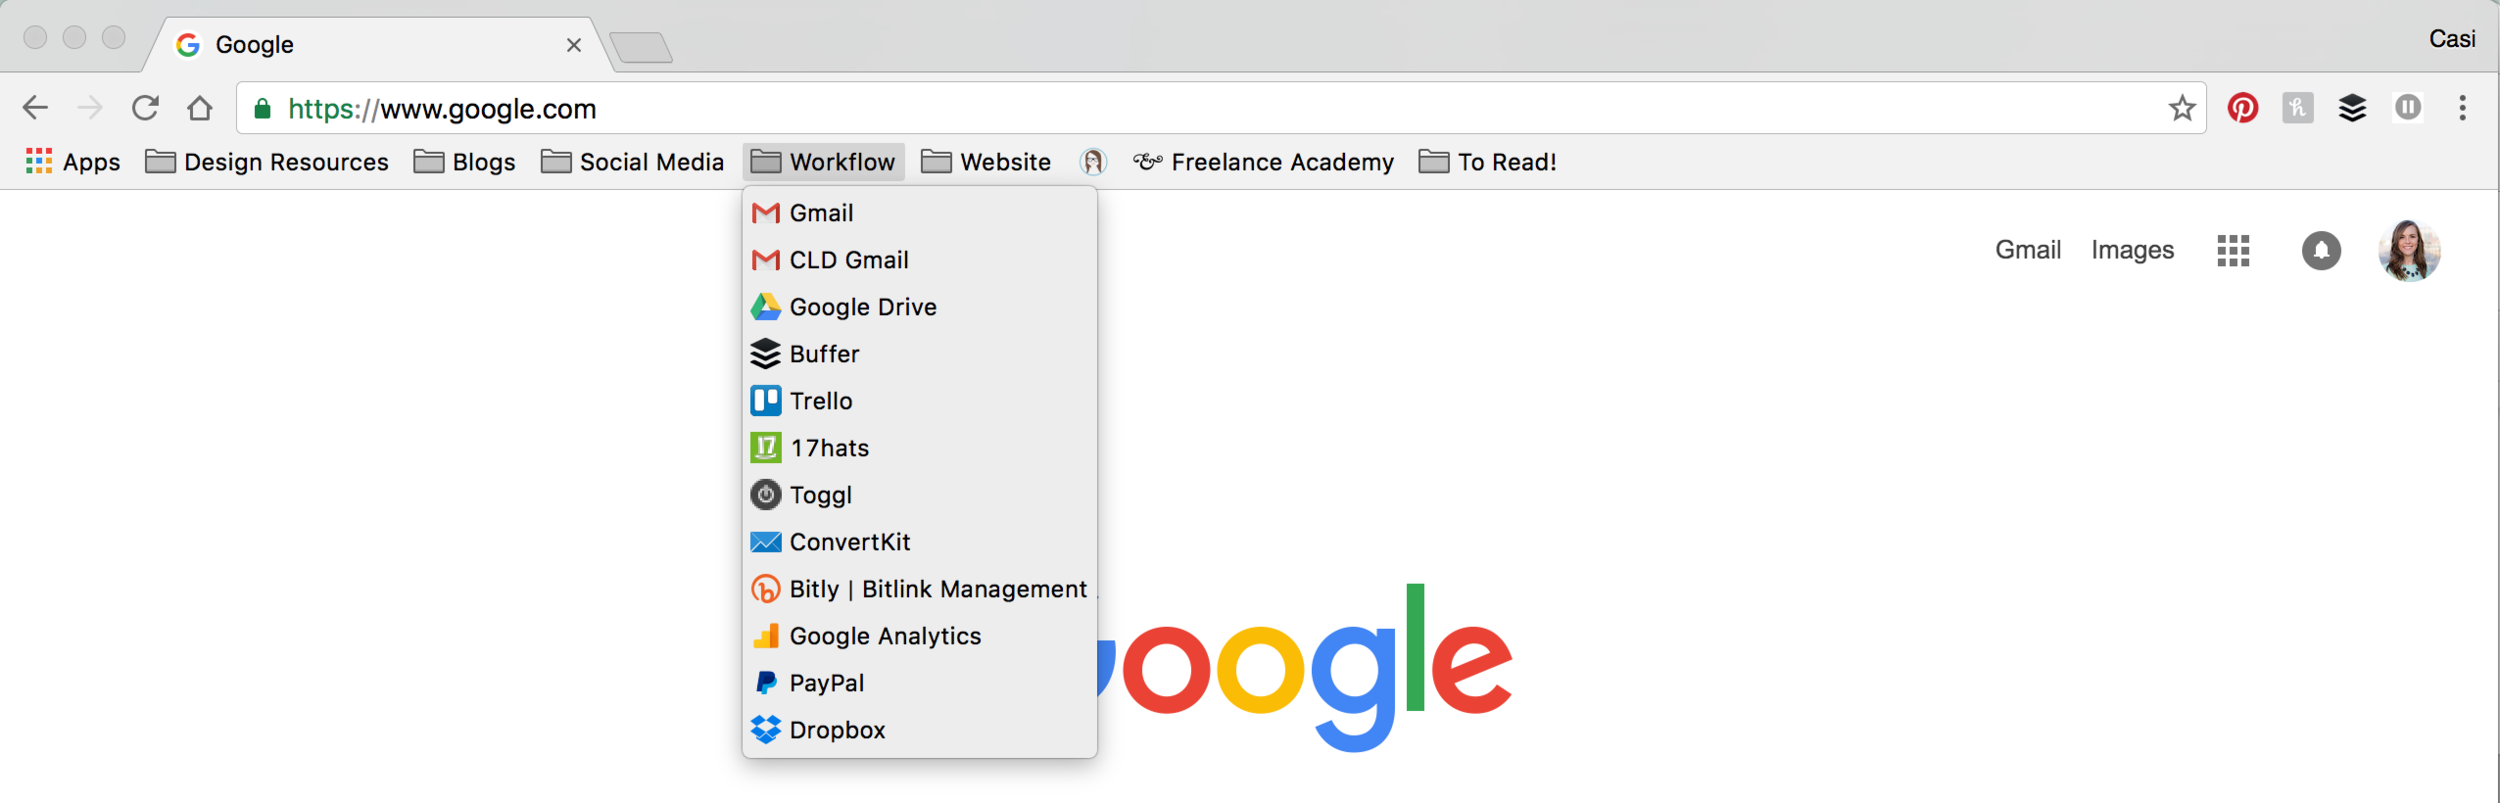 Six ways to stay organized in Business   Use the bookmark bar in Chrome   casilong.com/blog   #casilongdesign #fearlesspursuit